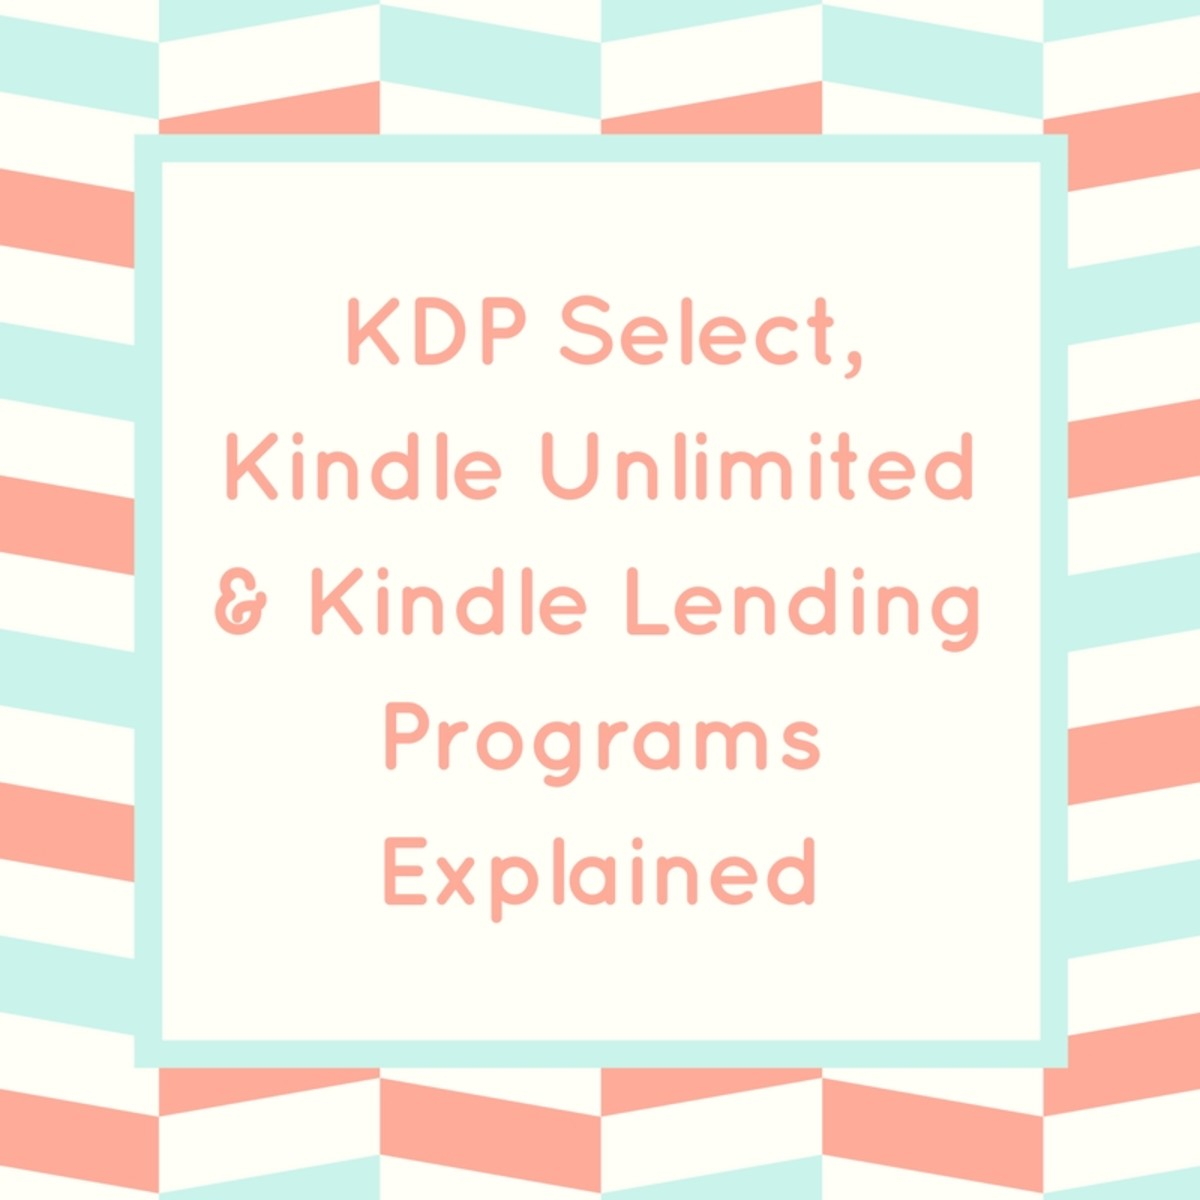 KDP Select, Kindle Unlimited, and Kindle Lending Programs Explained